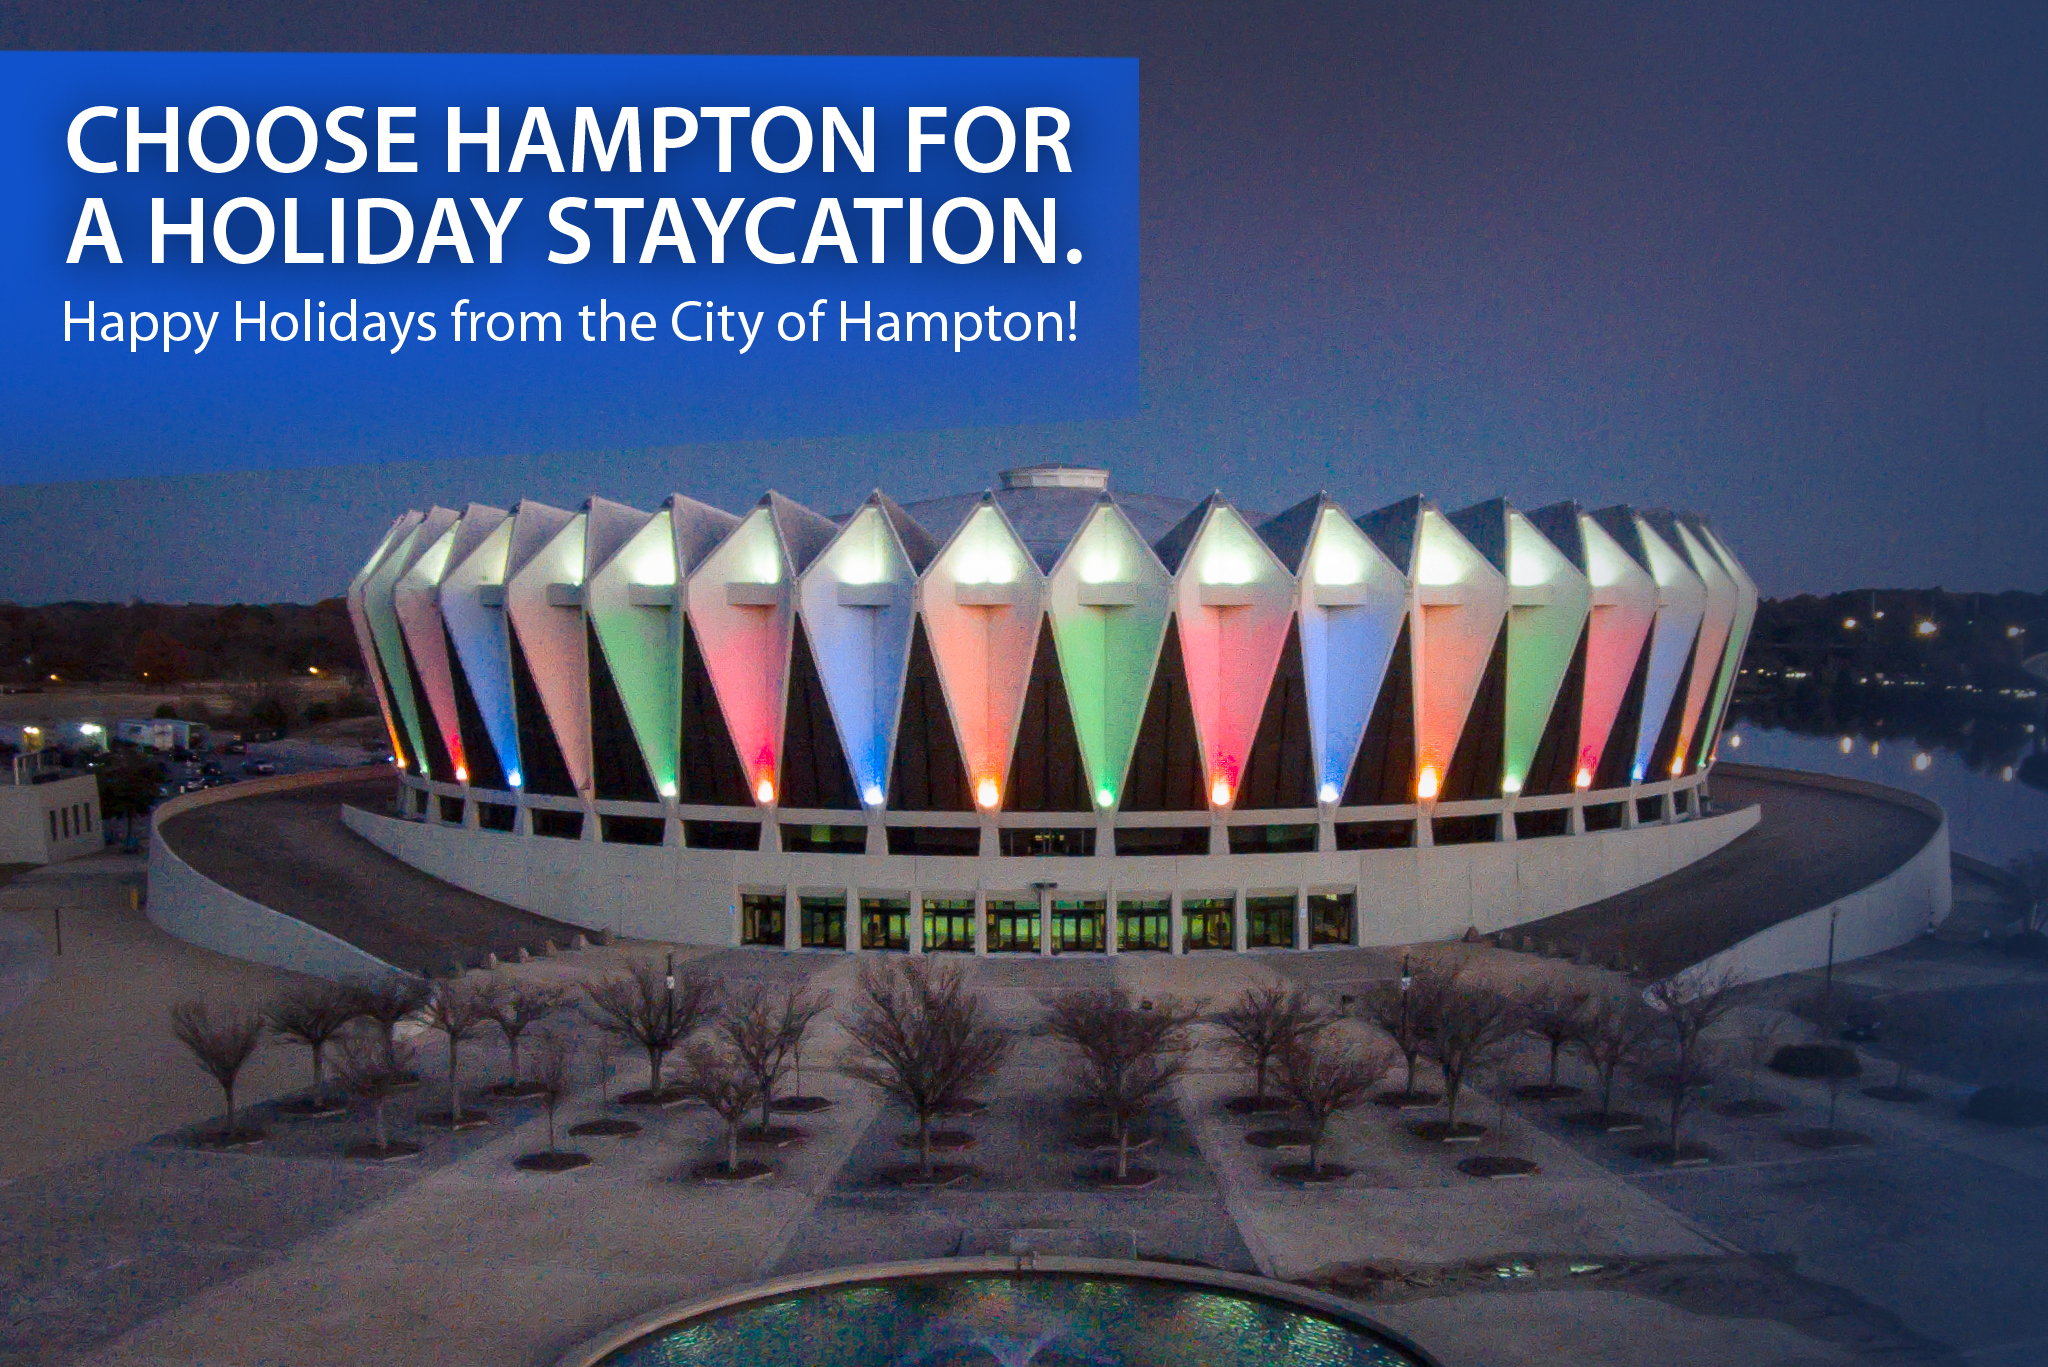 Happy Holidays from the City of Hampton